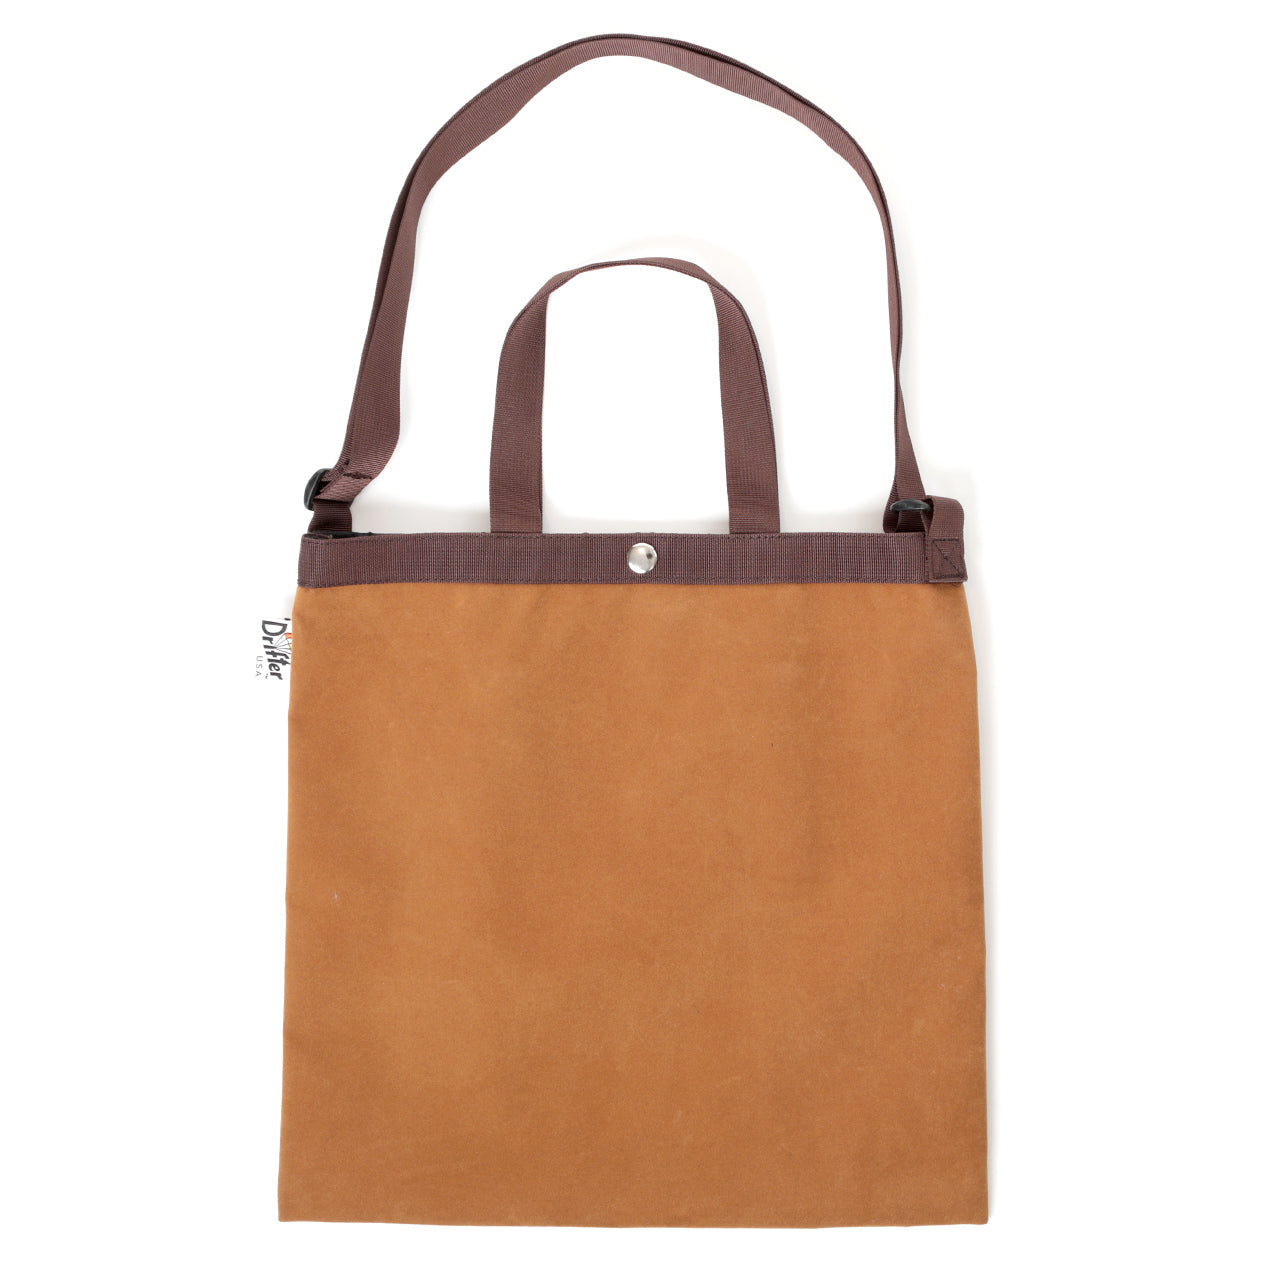 ELEMENTARY TOTE FAKE SUEDE LEATHER